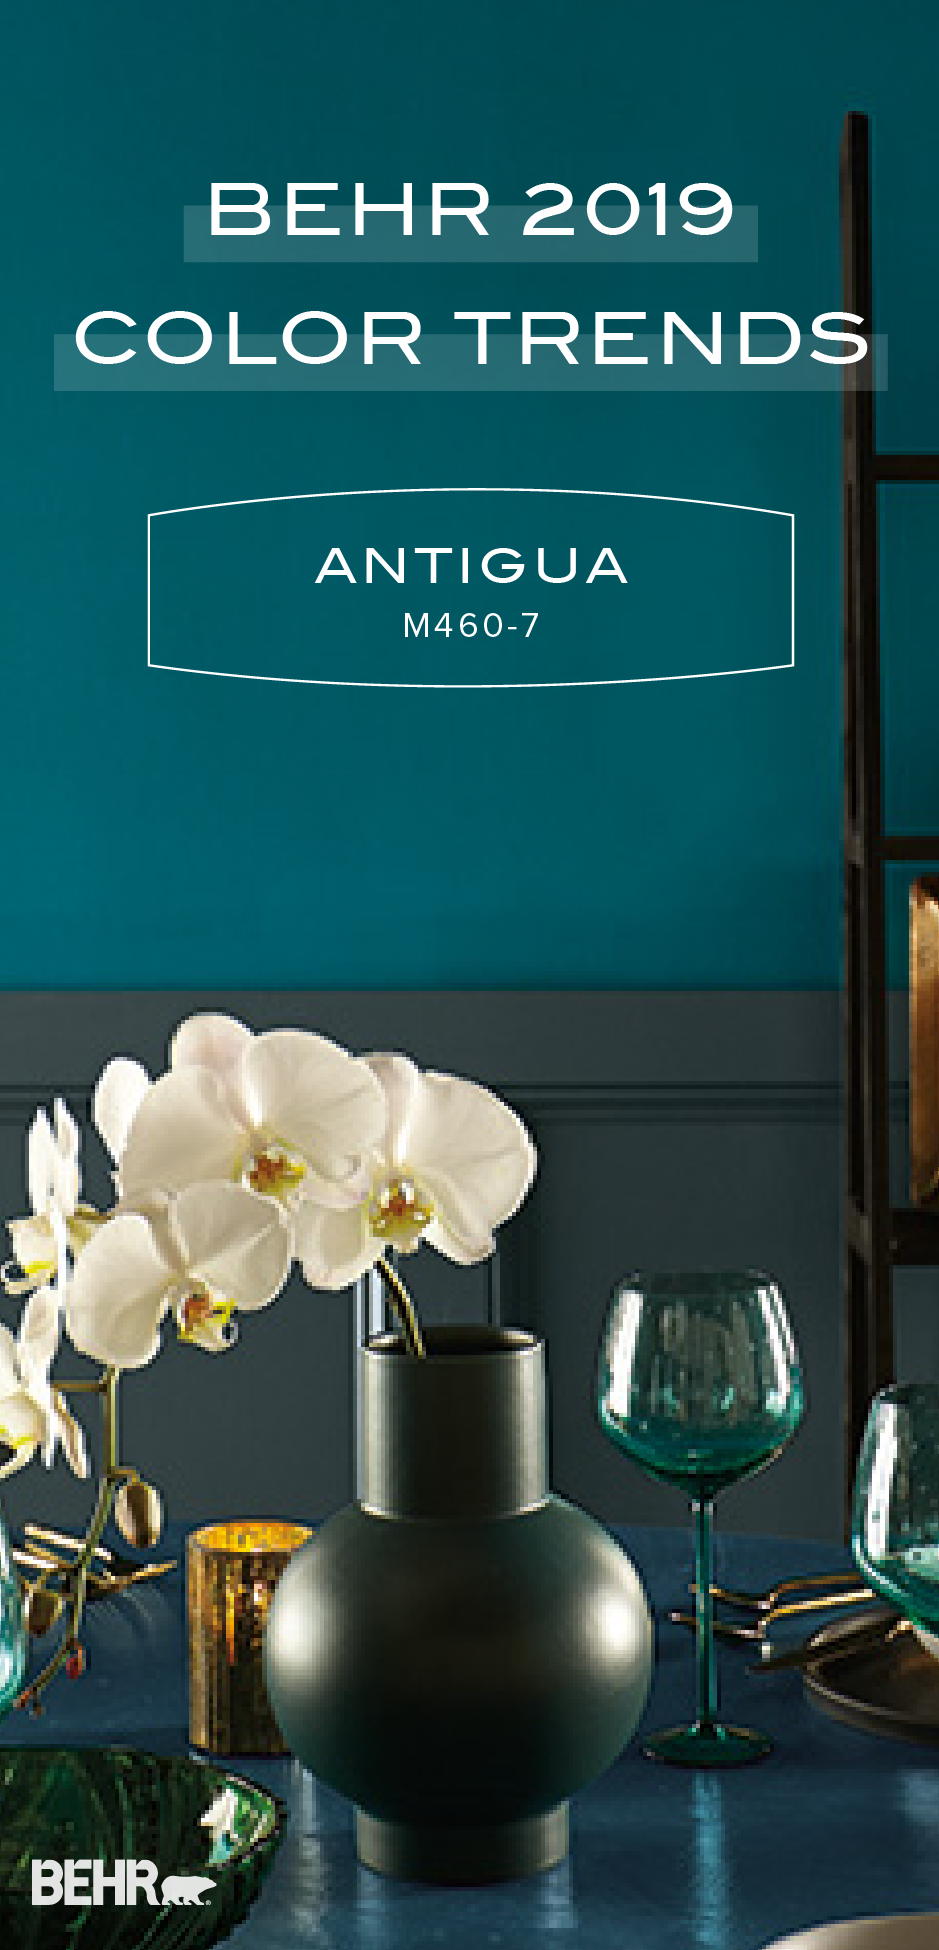 Behr paint in antigua is a vibrant shade of teal that - Behr color of the year ...